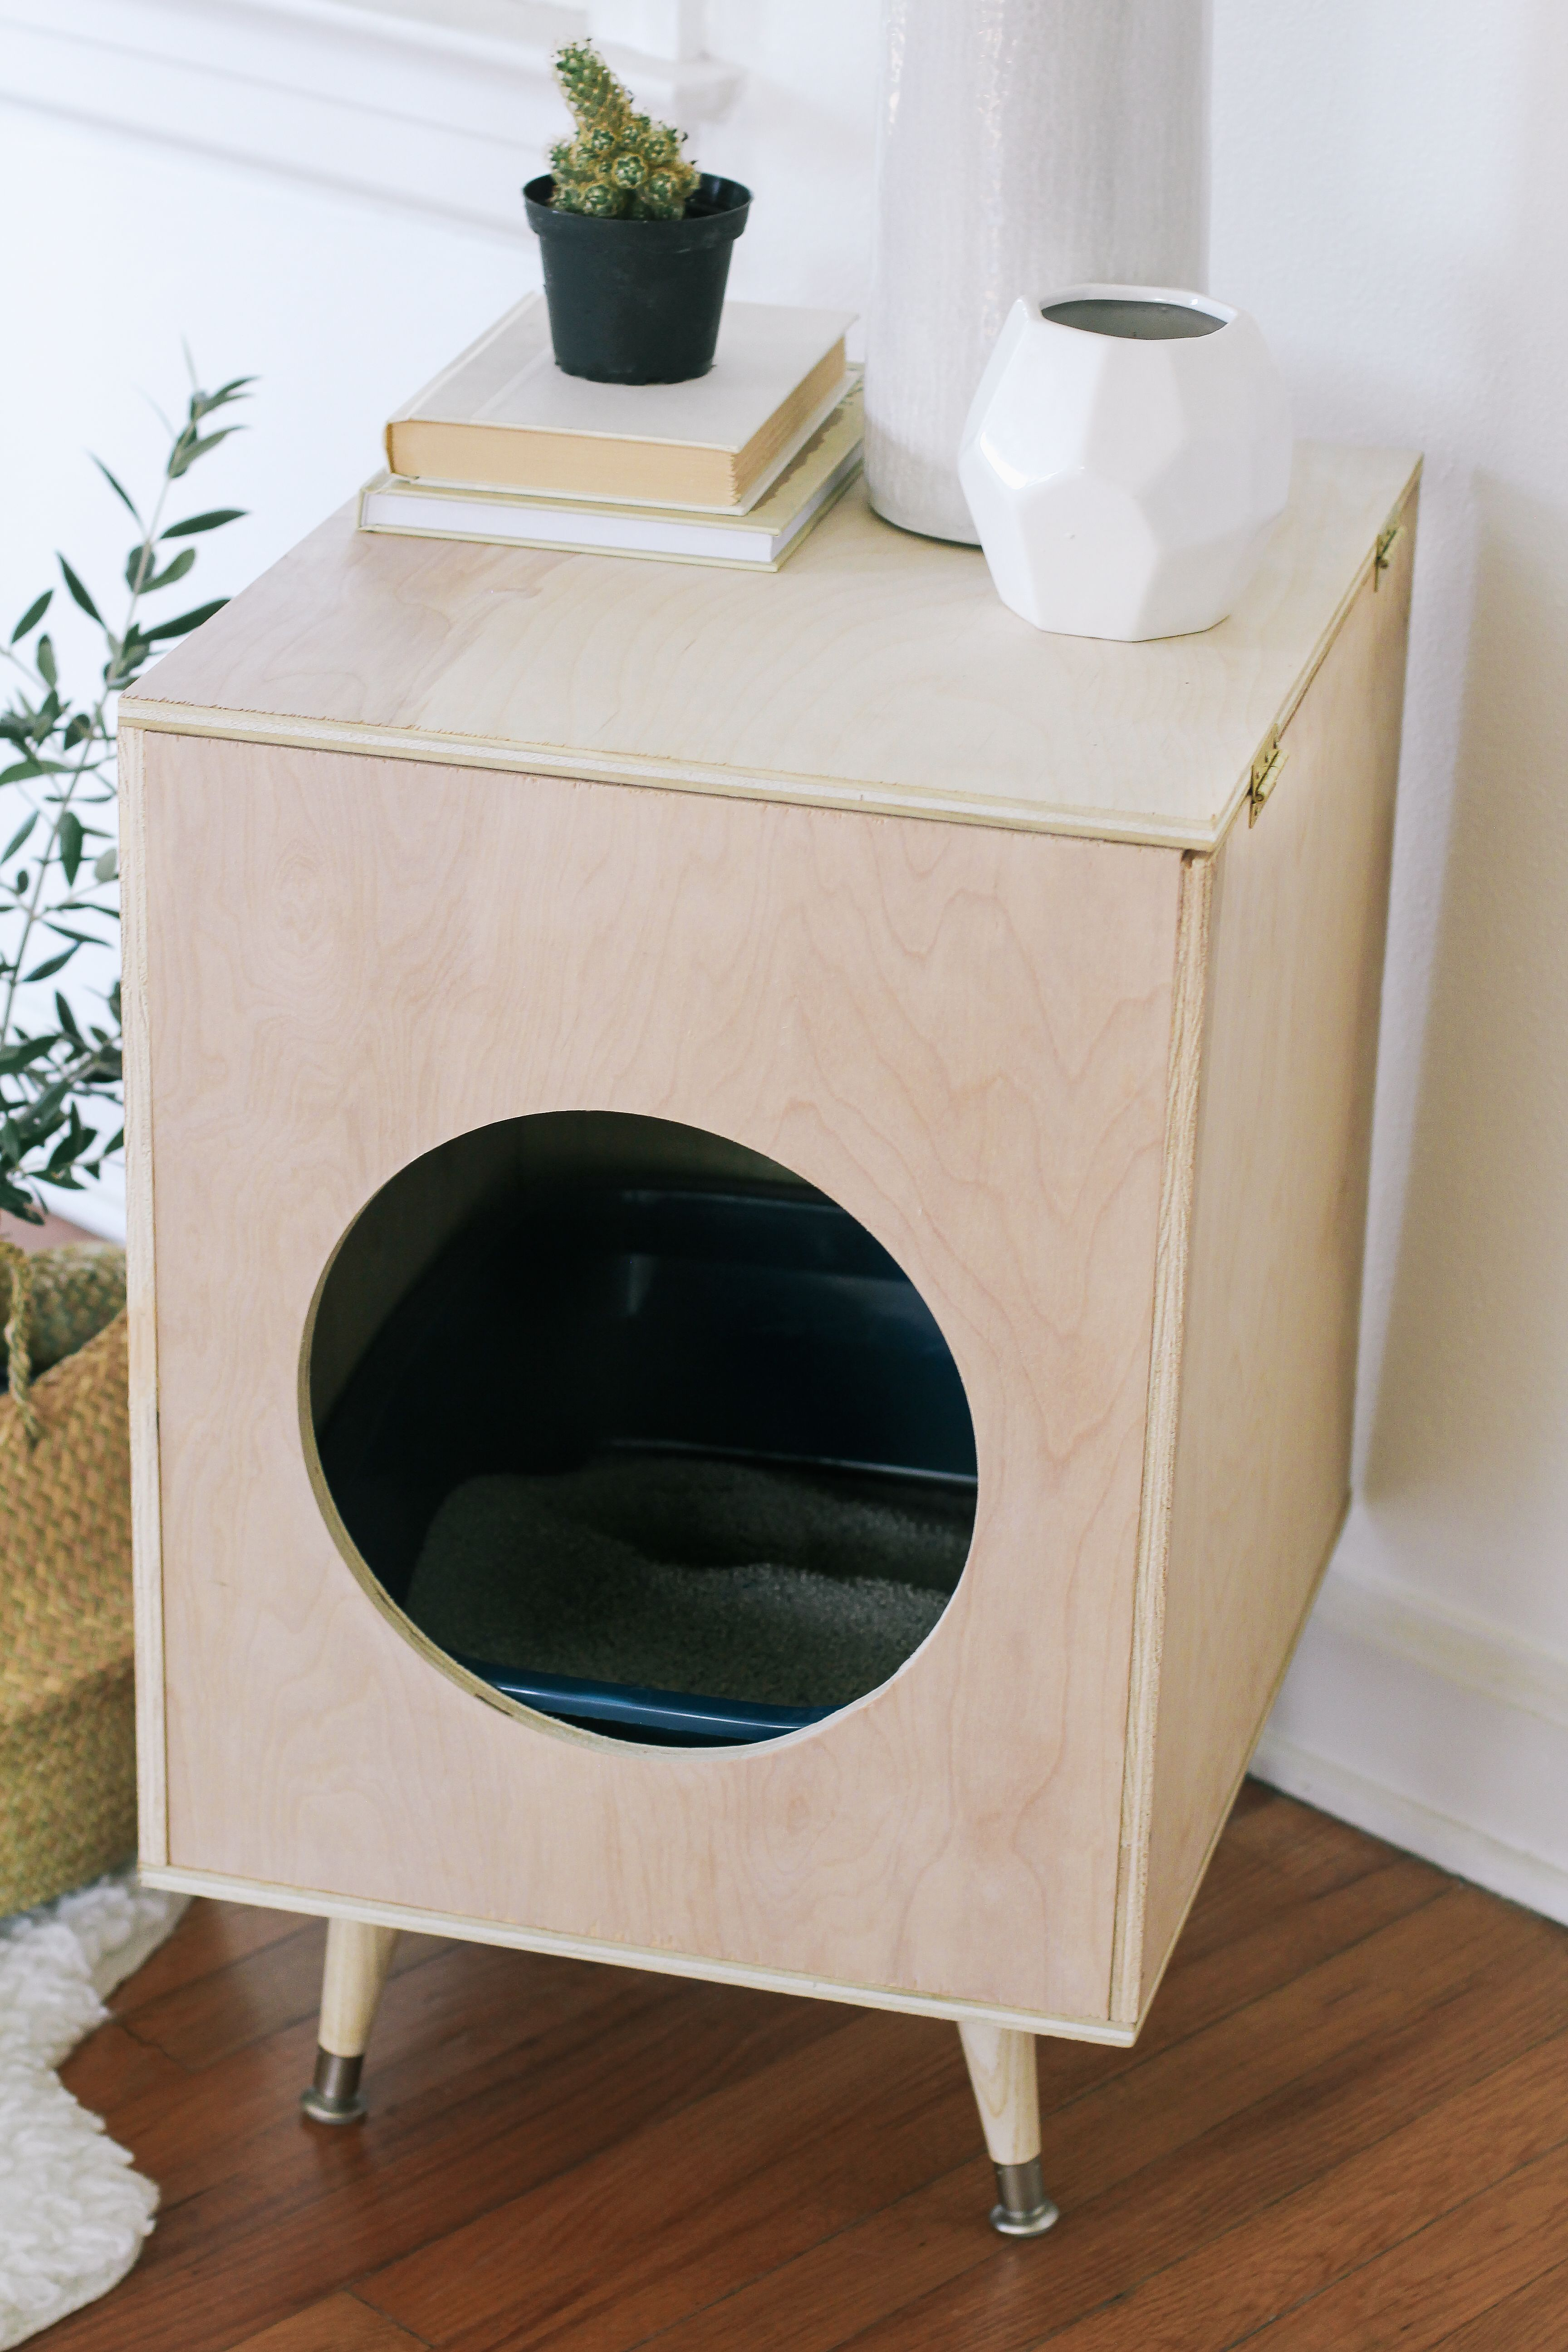 Diy Modern Plywood Kitty Litter Box With Images Cat Litter Box